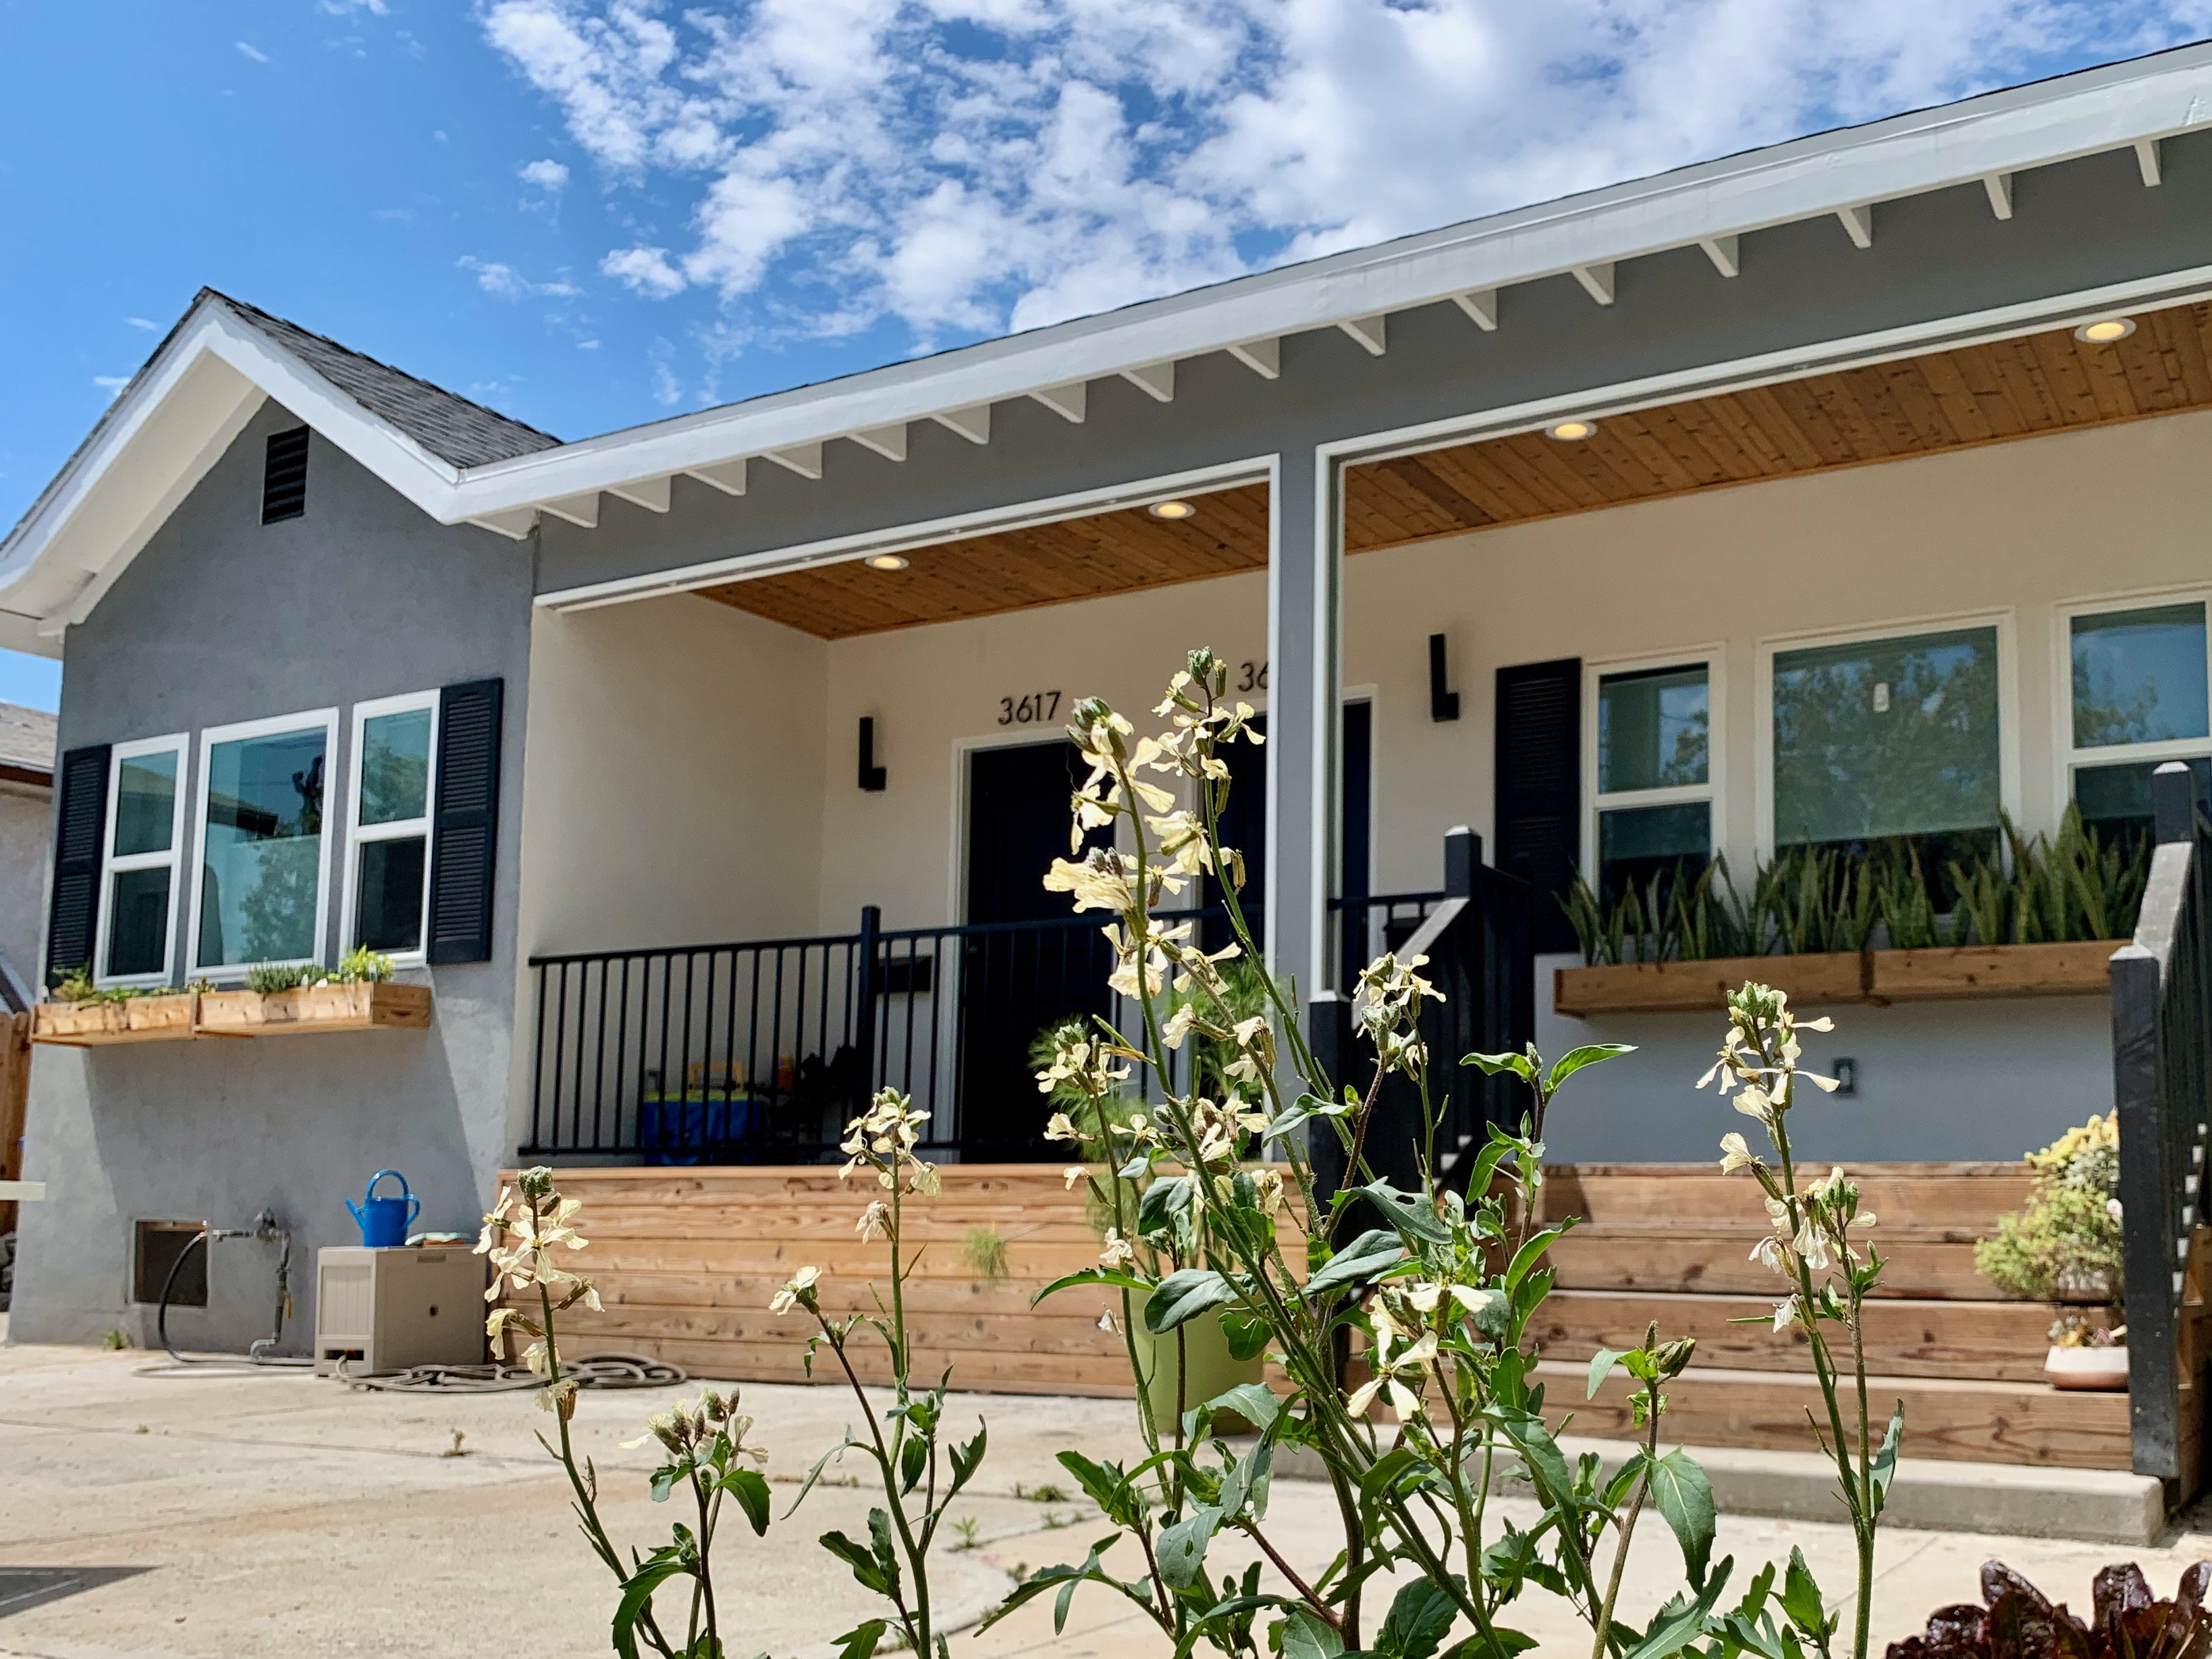 Sweet Updated Duplex | Outdoor Lounge W/ BBQ | Parking Included | Amazing NELA Location | Coming Soon!